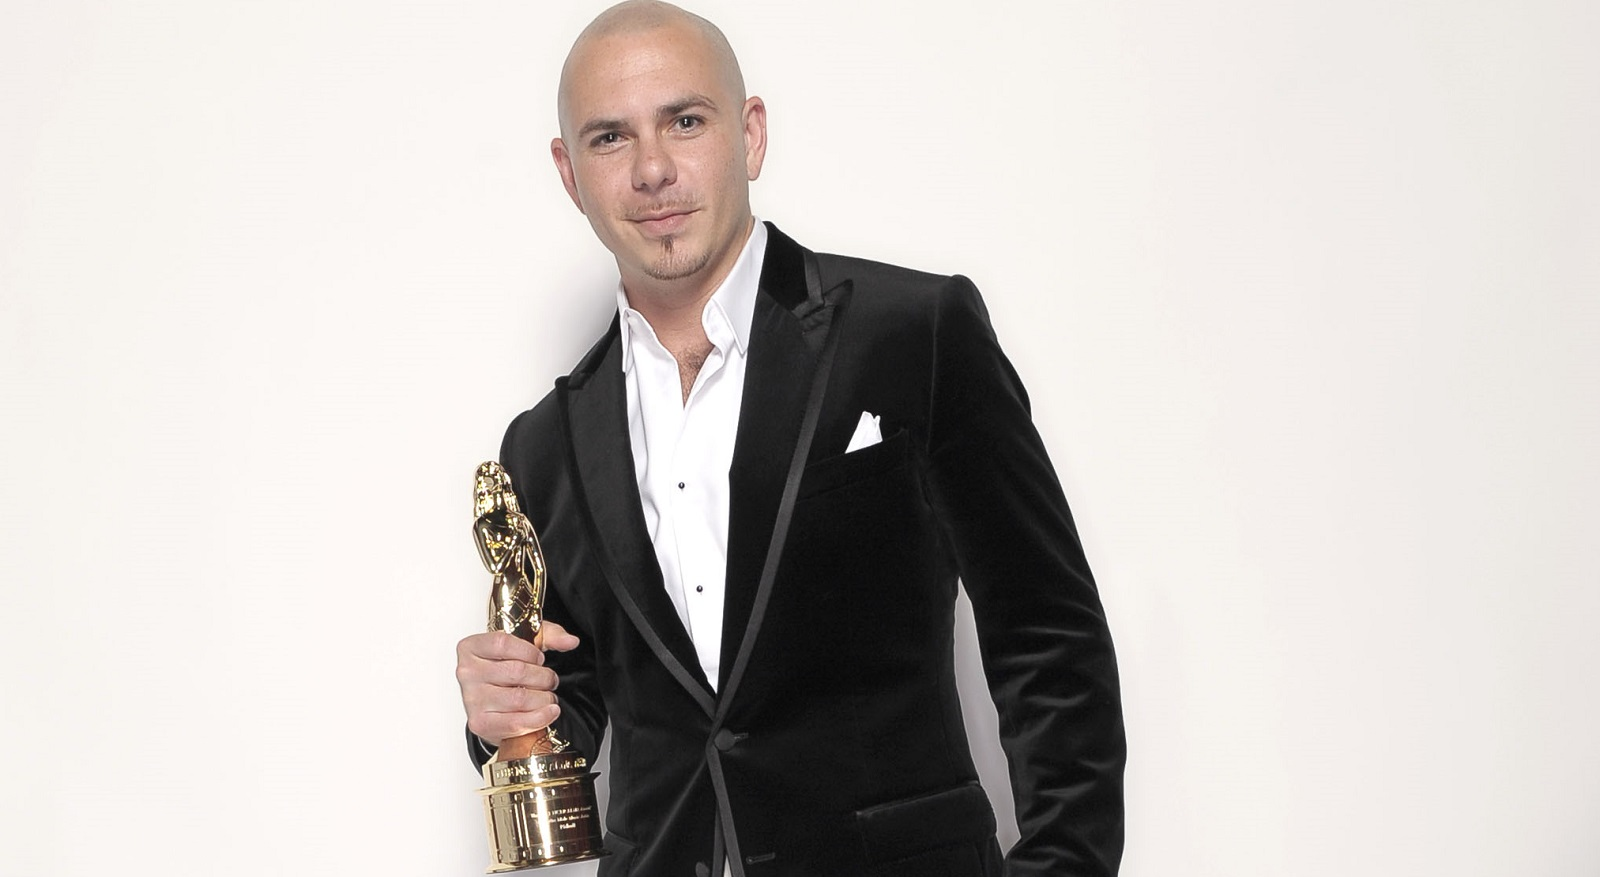 Says Jeff Miers: ' 'Krazy,' by Pitbull, should only be played on yachts docked in Miami, where beautiful people drink champagne that costs more per bottle than I make per month, and gorgeous women pretend that Pitbull is someone they'd favor with even a first glance if he wasn't rolling in music industry greenbacks.'  (Getty Images)